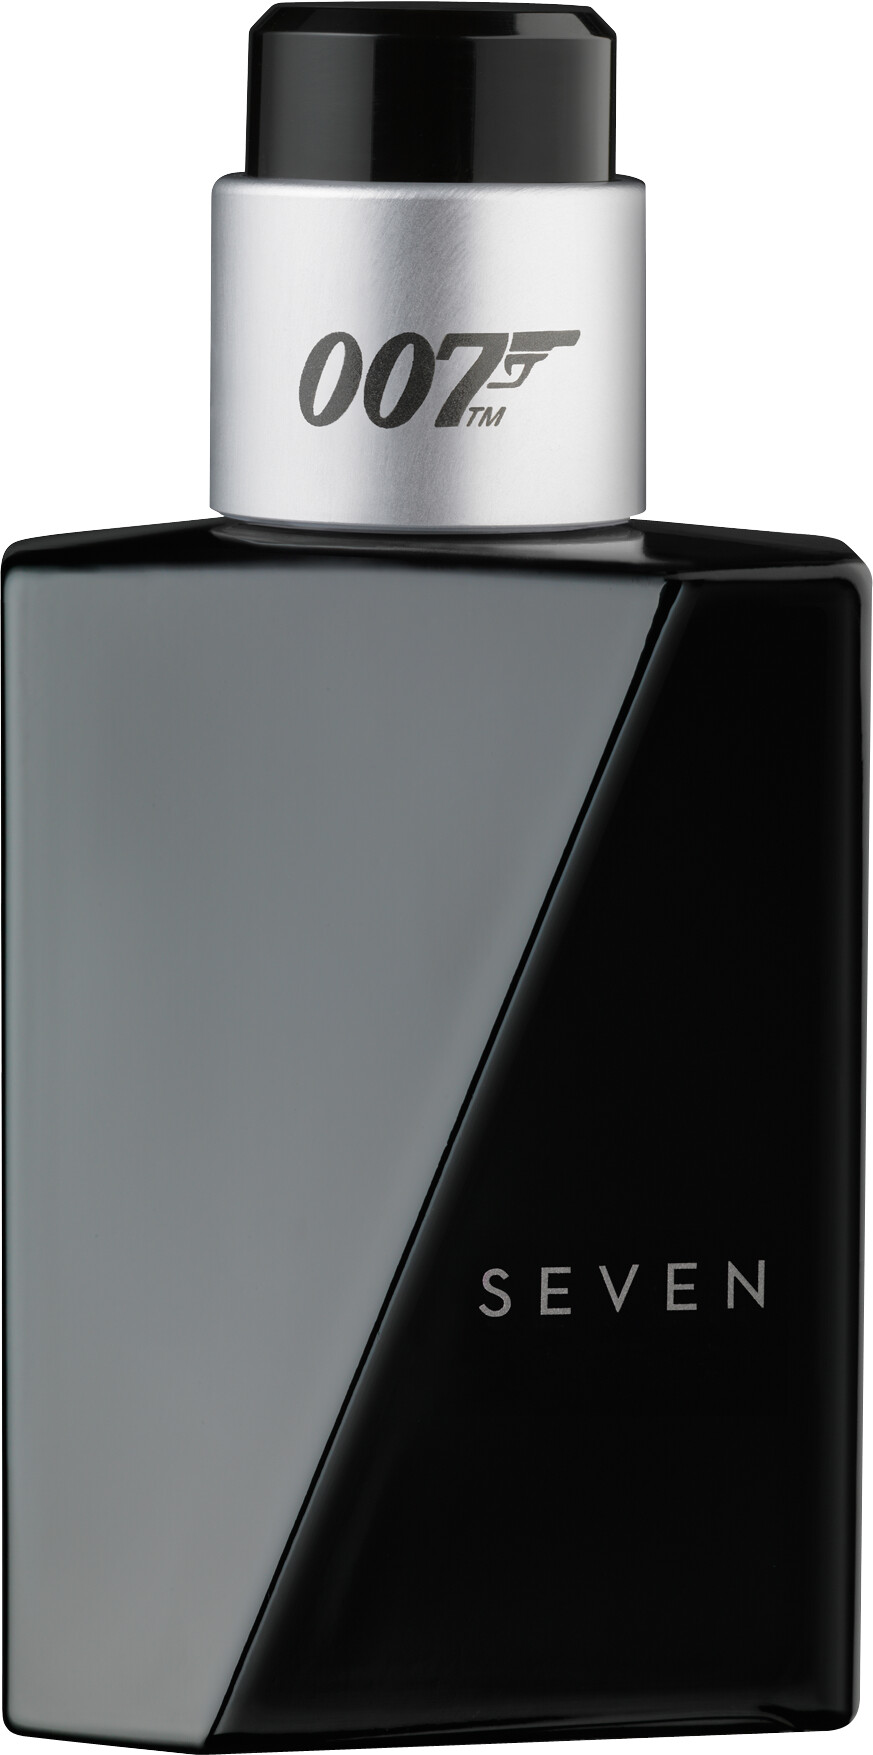 007 Fragrances Seven